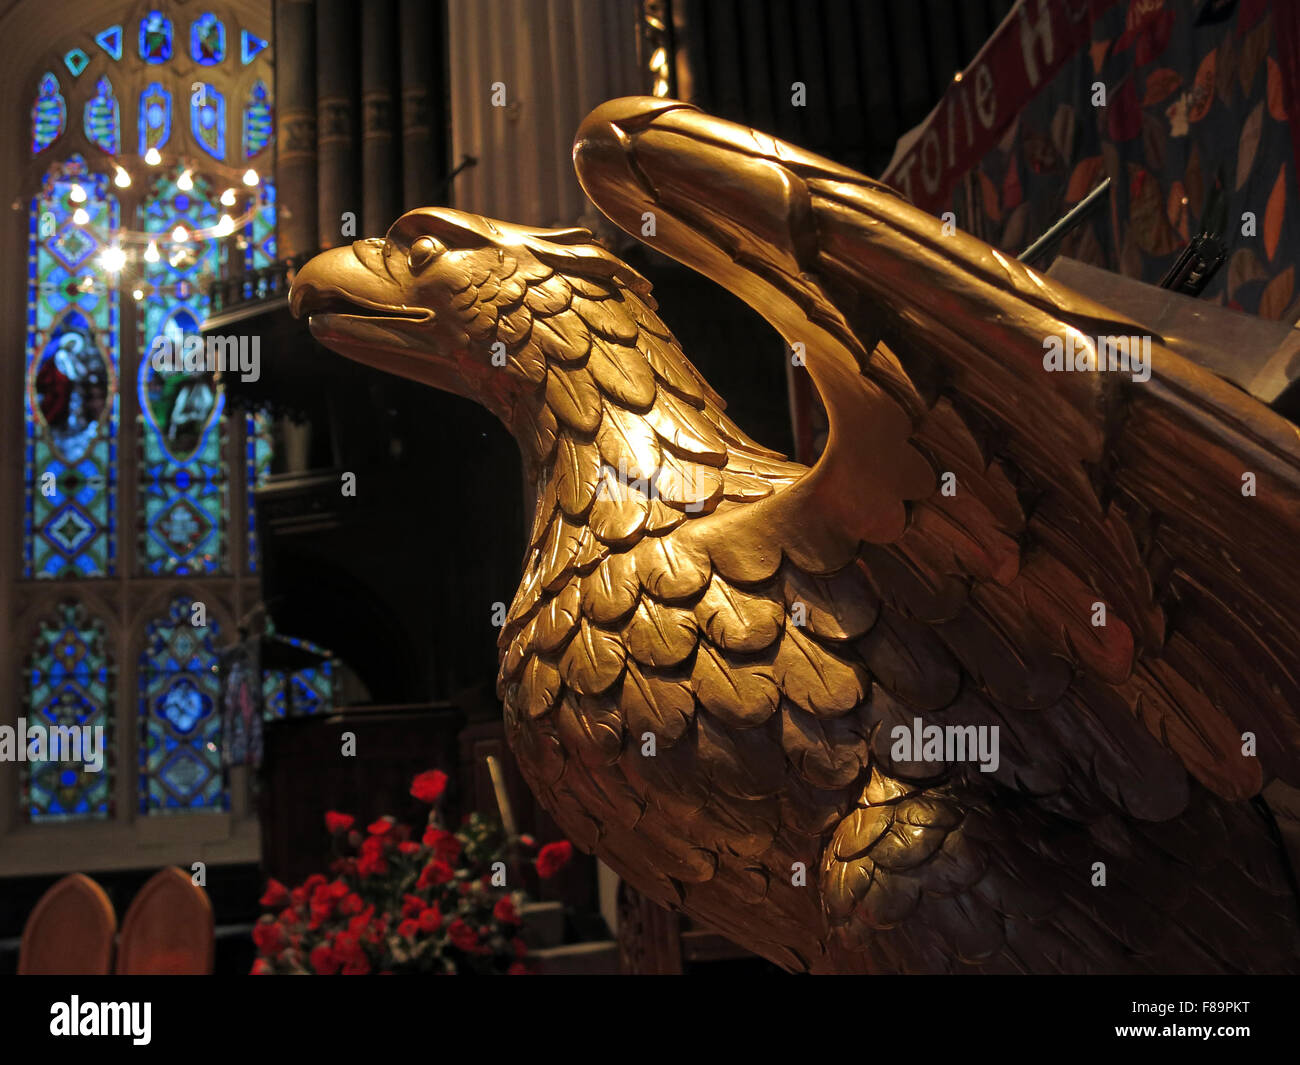 Lectern,rd,Road,Edinburgh,Scotland,UK,bird,pulpit,st,johns,church,religion,religious,blue window,bold,brass,brass lectern gold eagle,bright,church,golden,holy,lectern,reading,religious,yellow,Eagle Lectern,GoTonySmith,Buy Pictures of,Buy Images Of